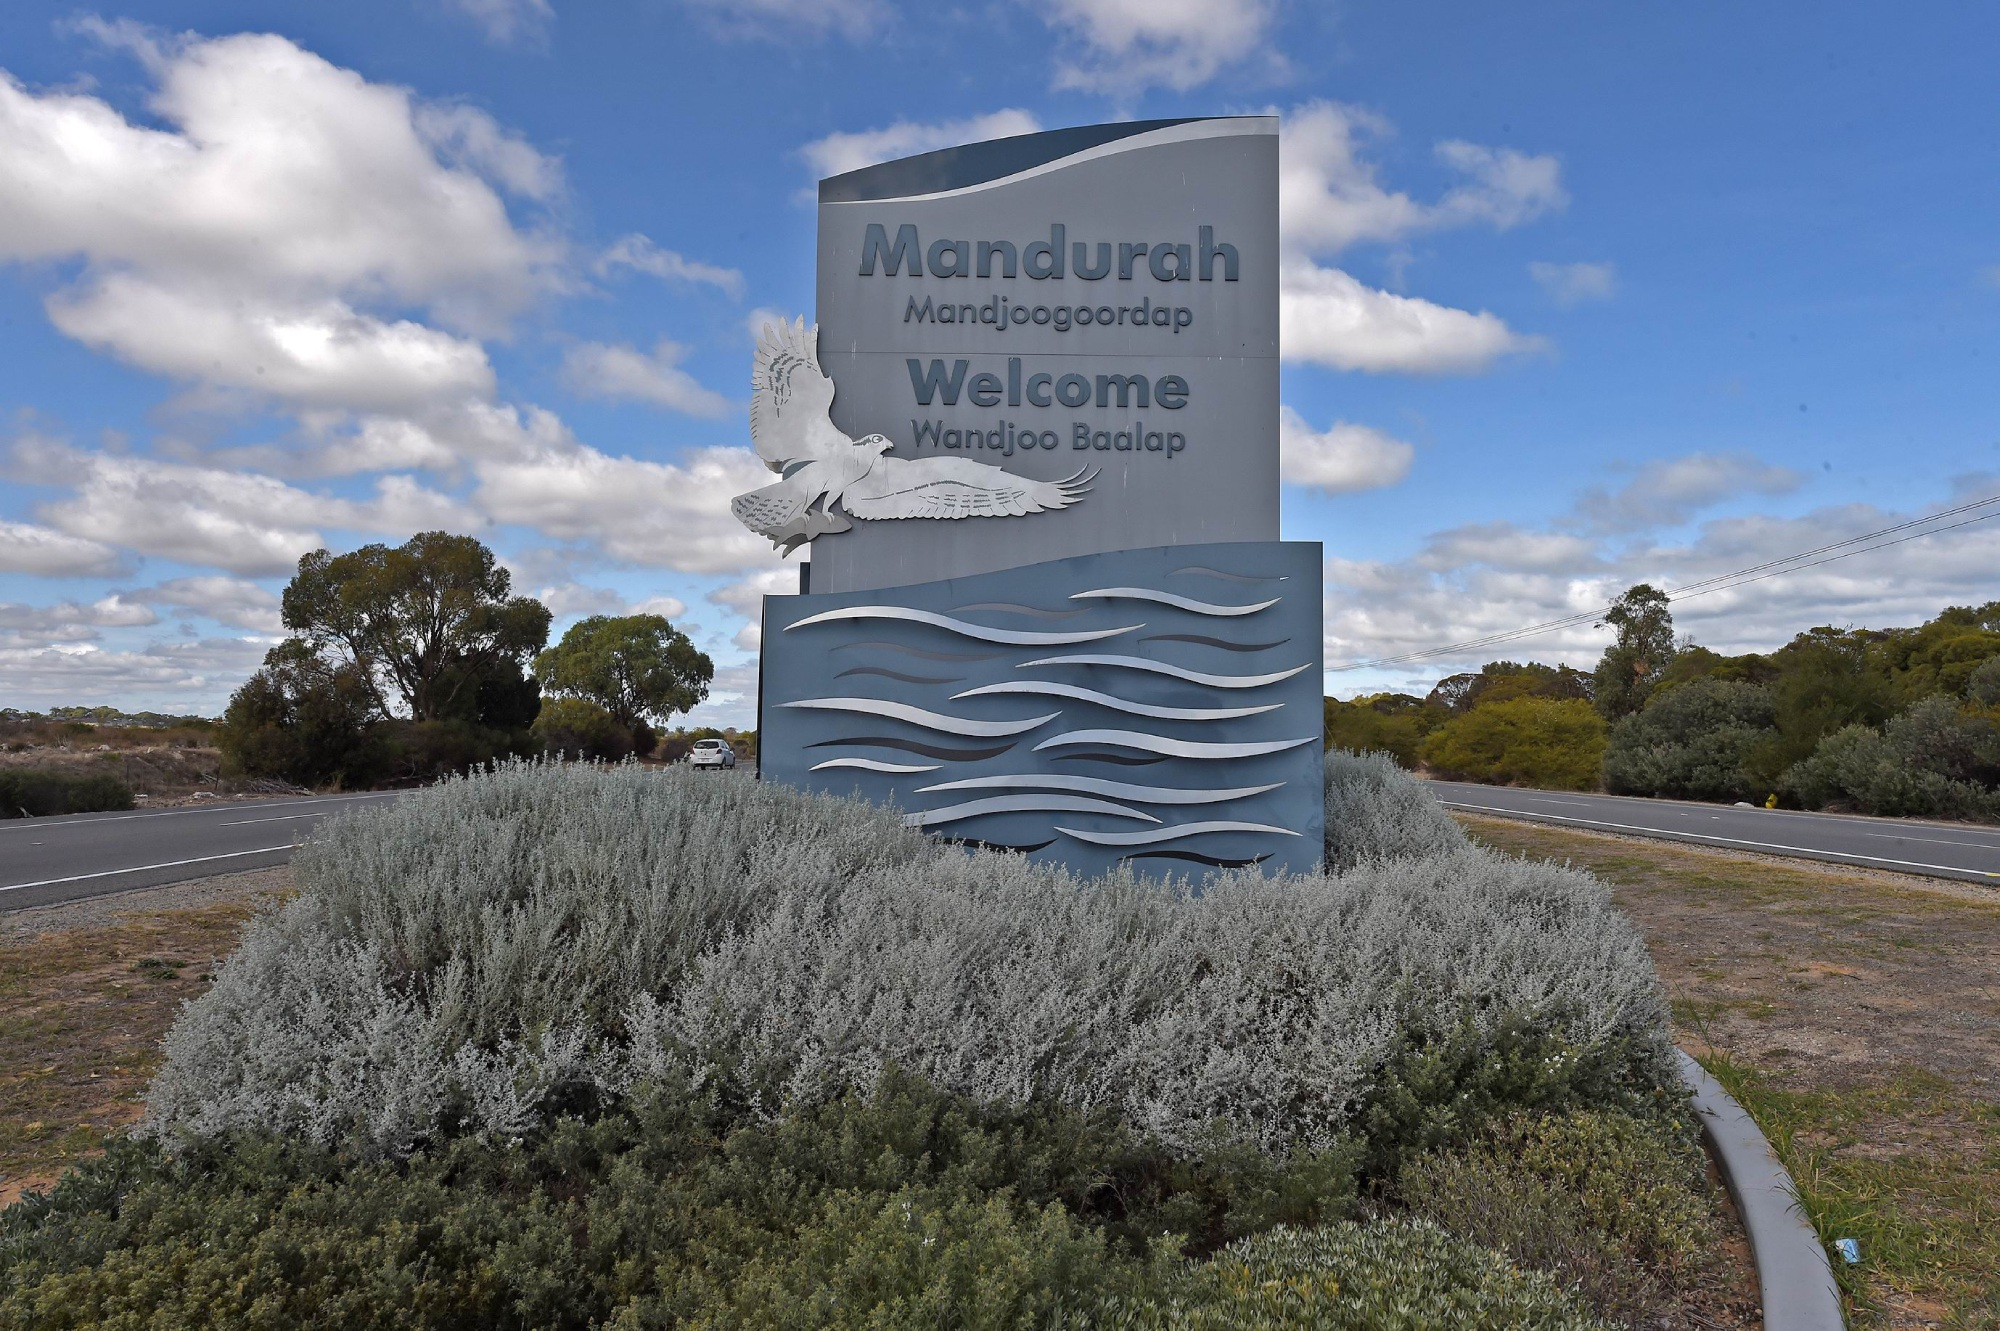 New self-service system for City of Mandurah libraries